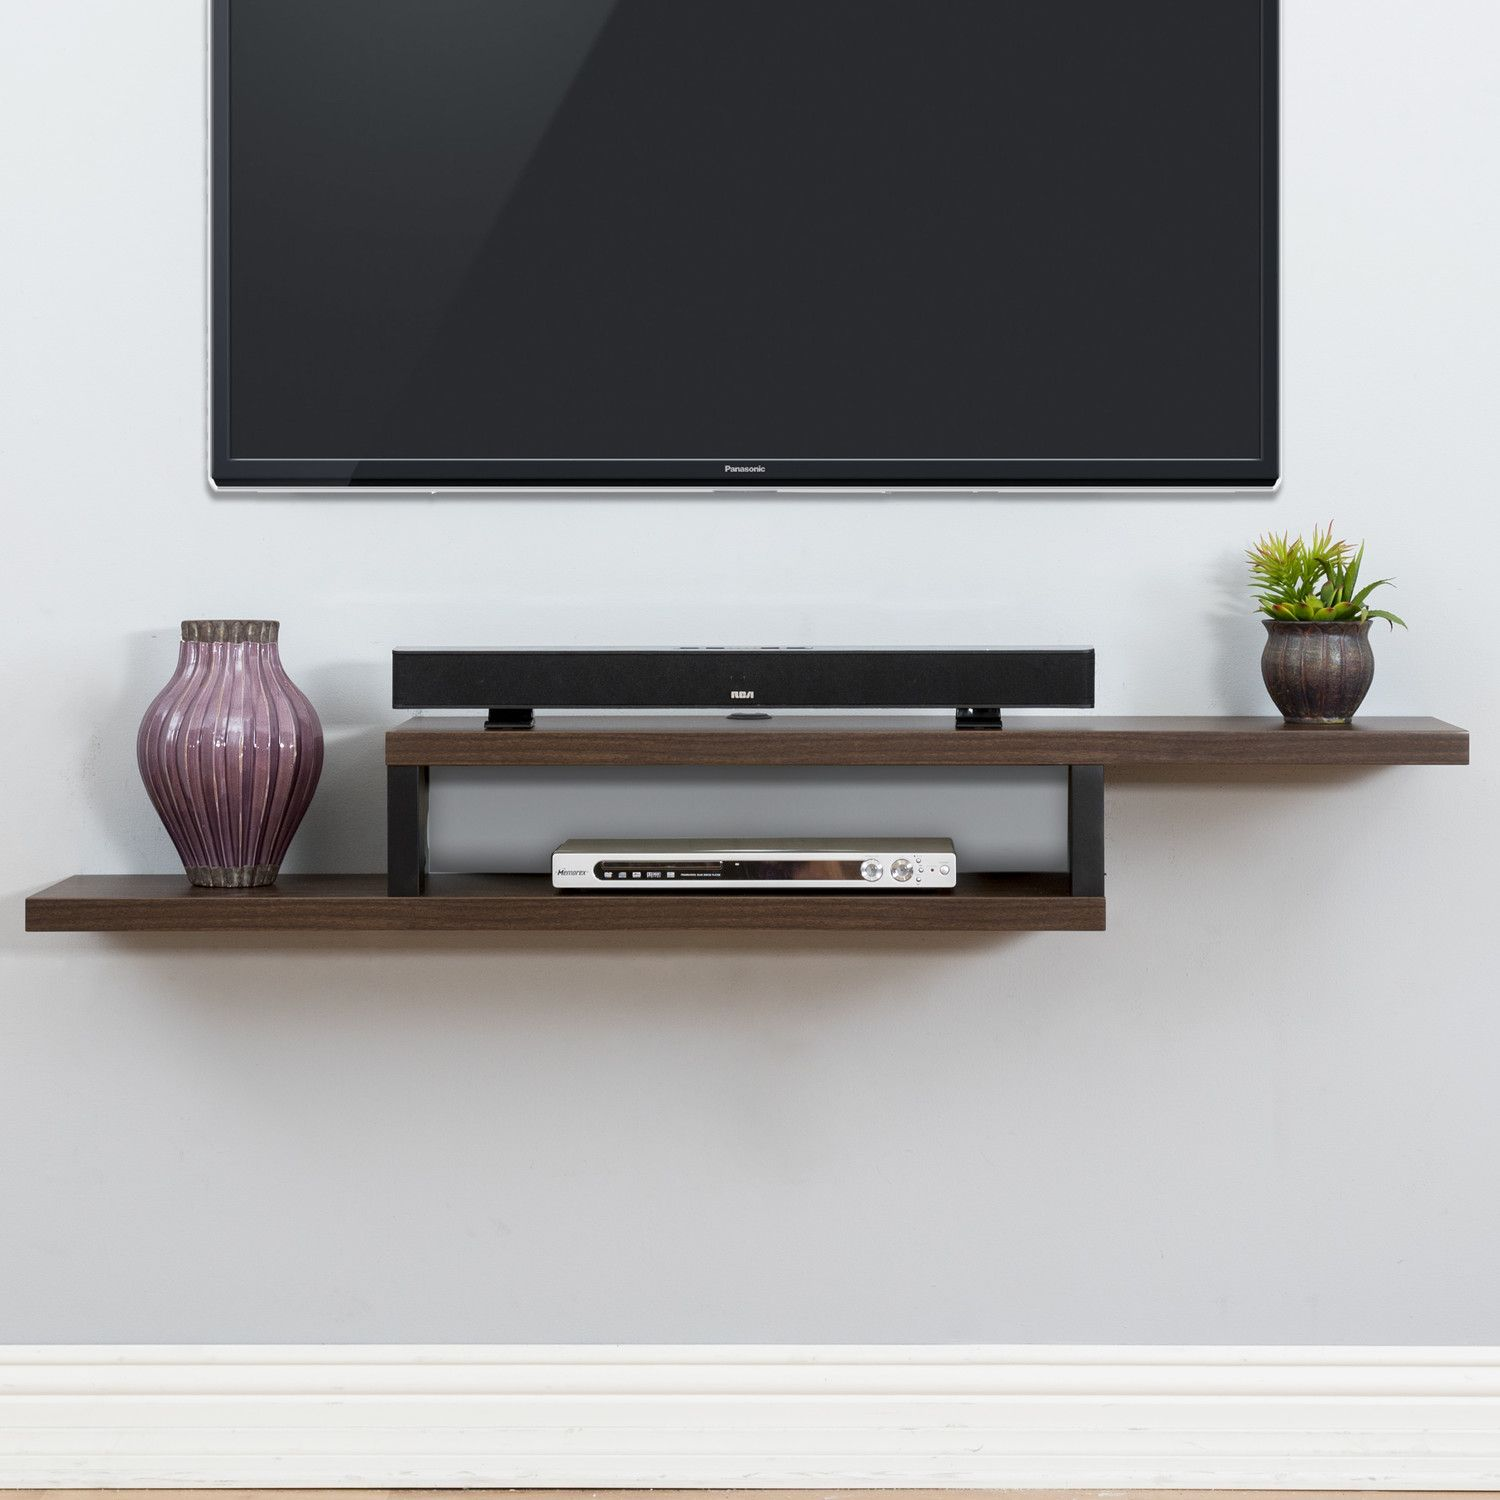 15 Modern Tv Wall Mount Ideas For Living Room Mounted Tv Wall  # Meuble Angle Tv But